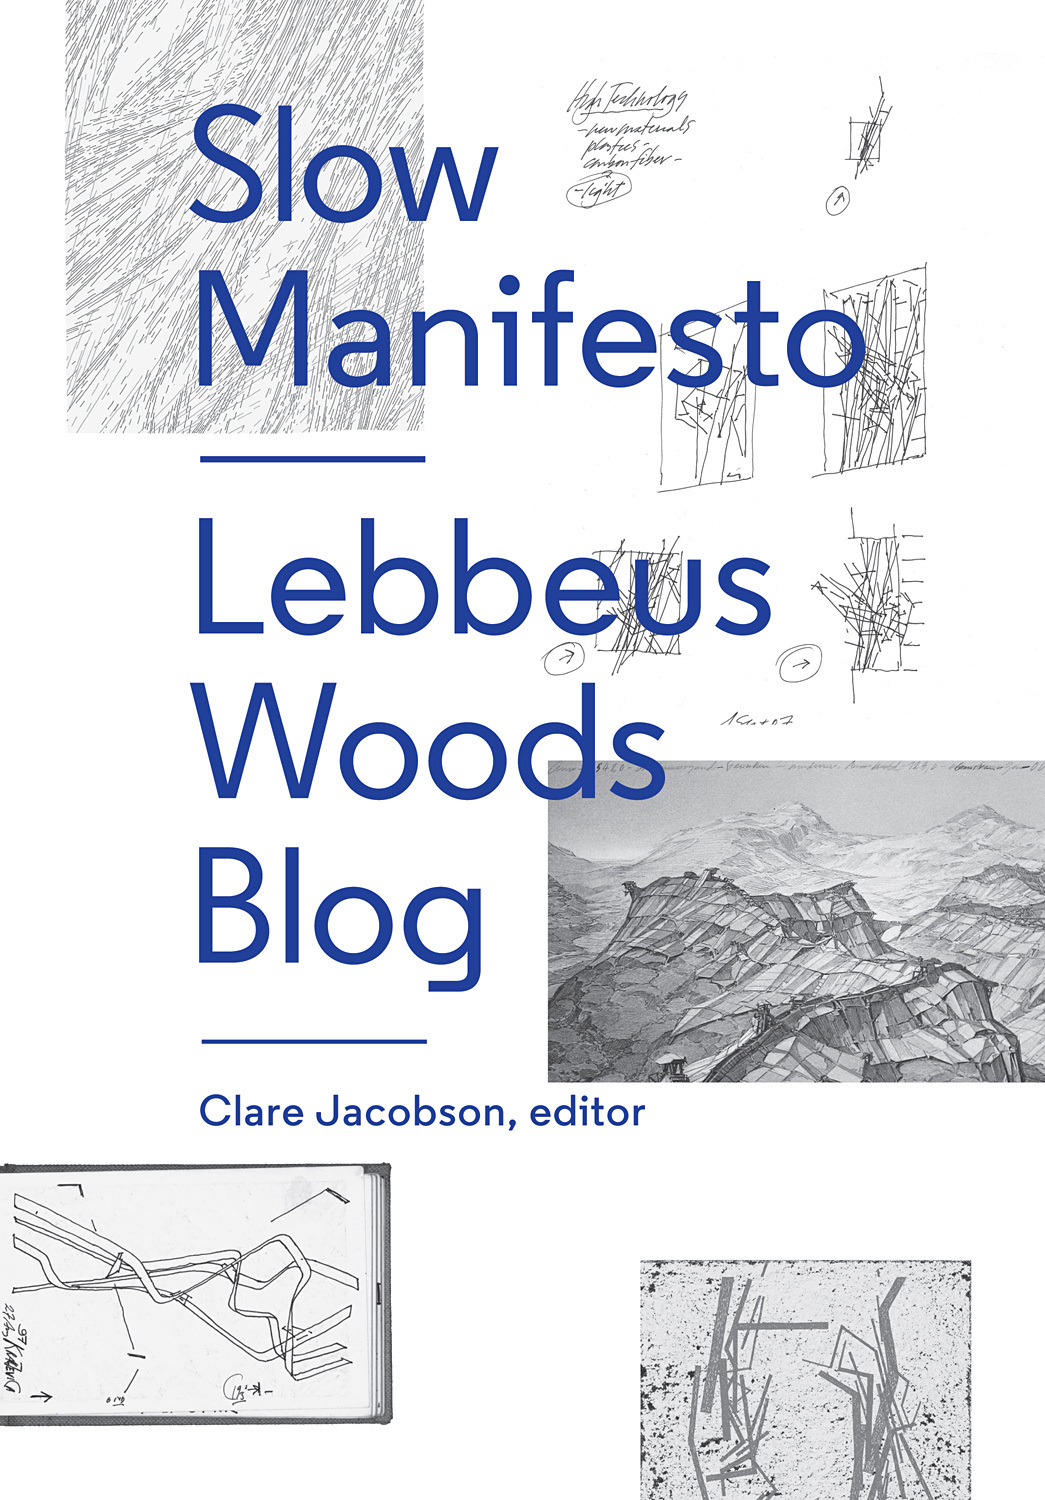 Slow Manifesto: Lebbeus Woods Blog edited by Clare Jacobson, published by Princeton Architectural Press (2015). Image courtesy of Princeton Architectural Press.